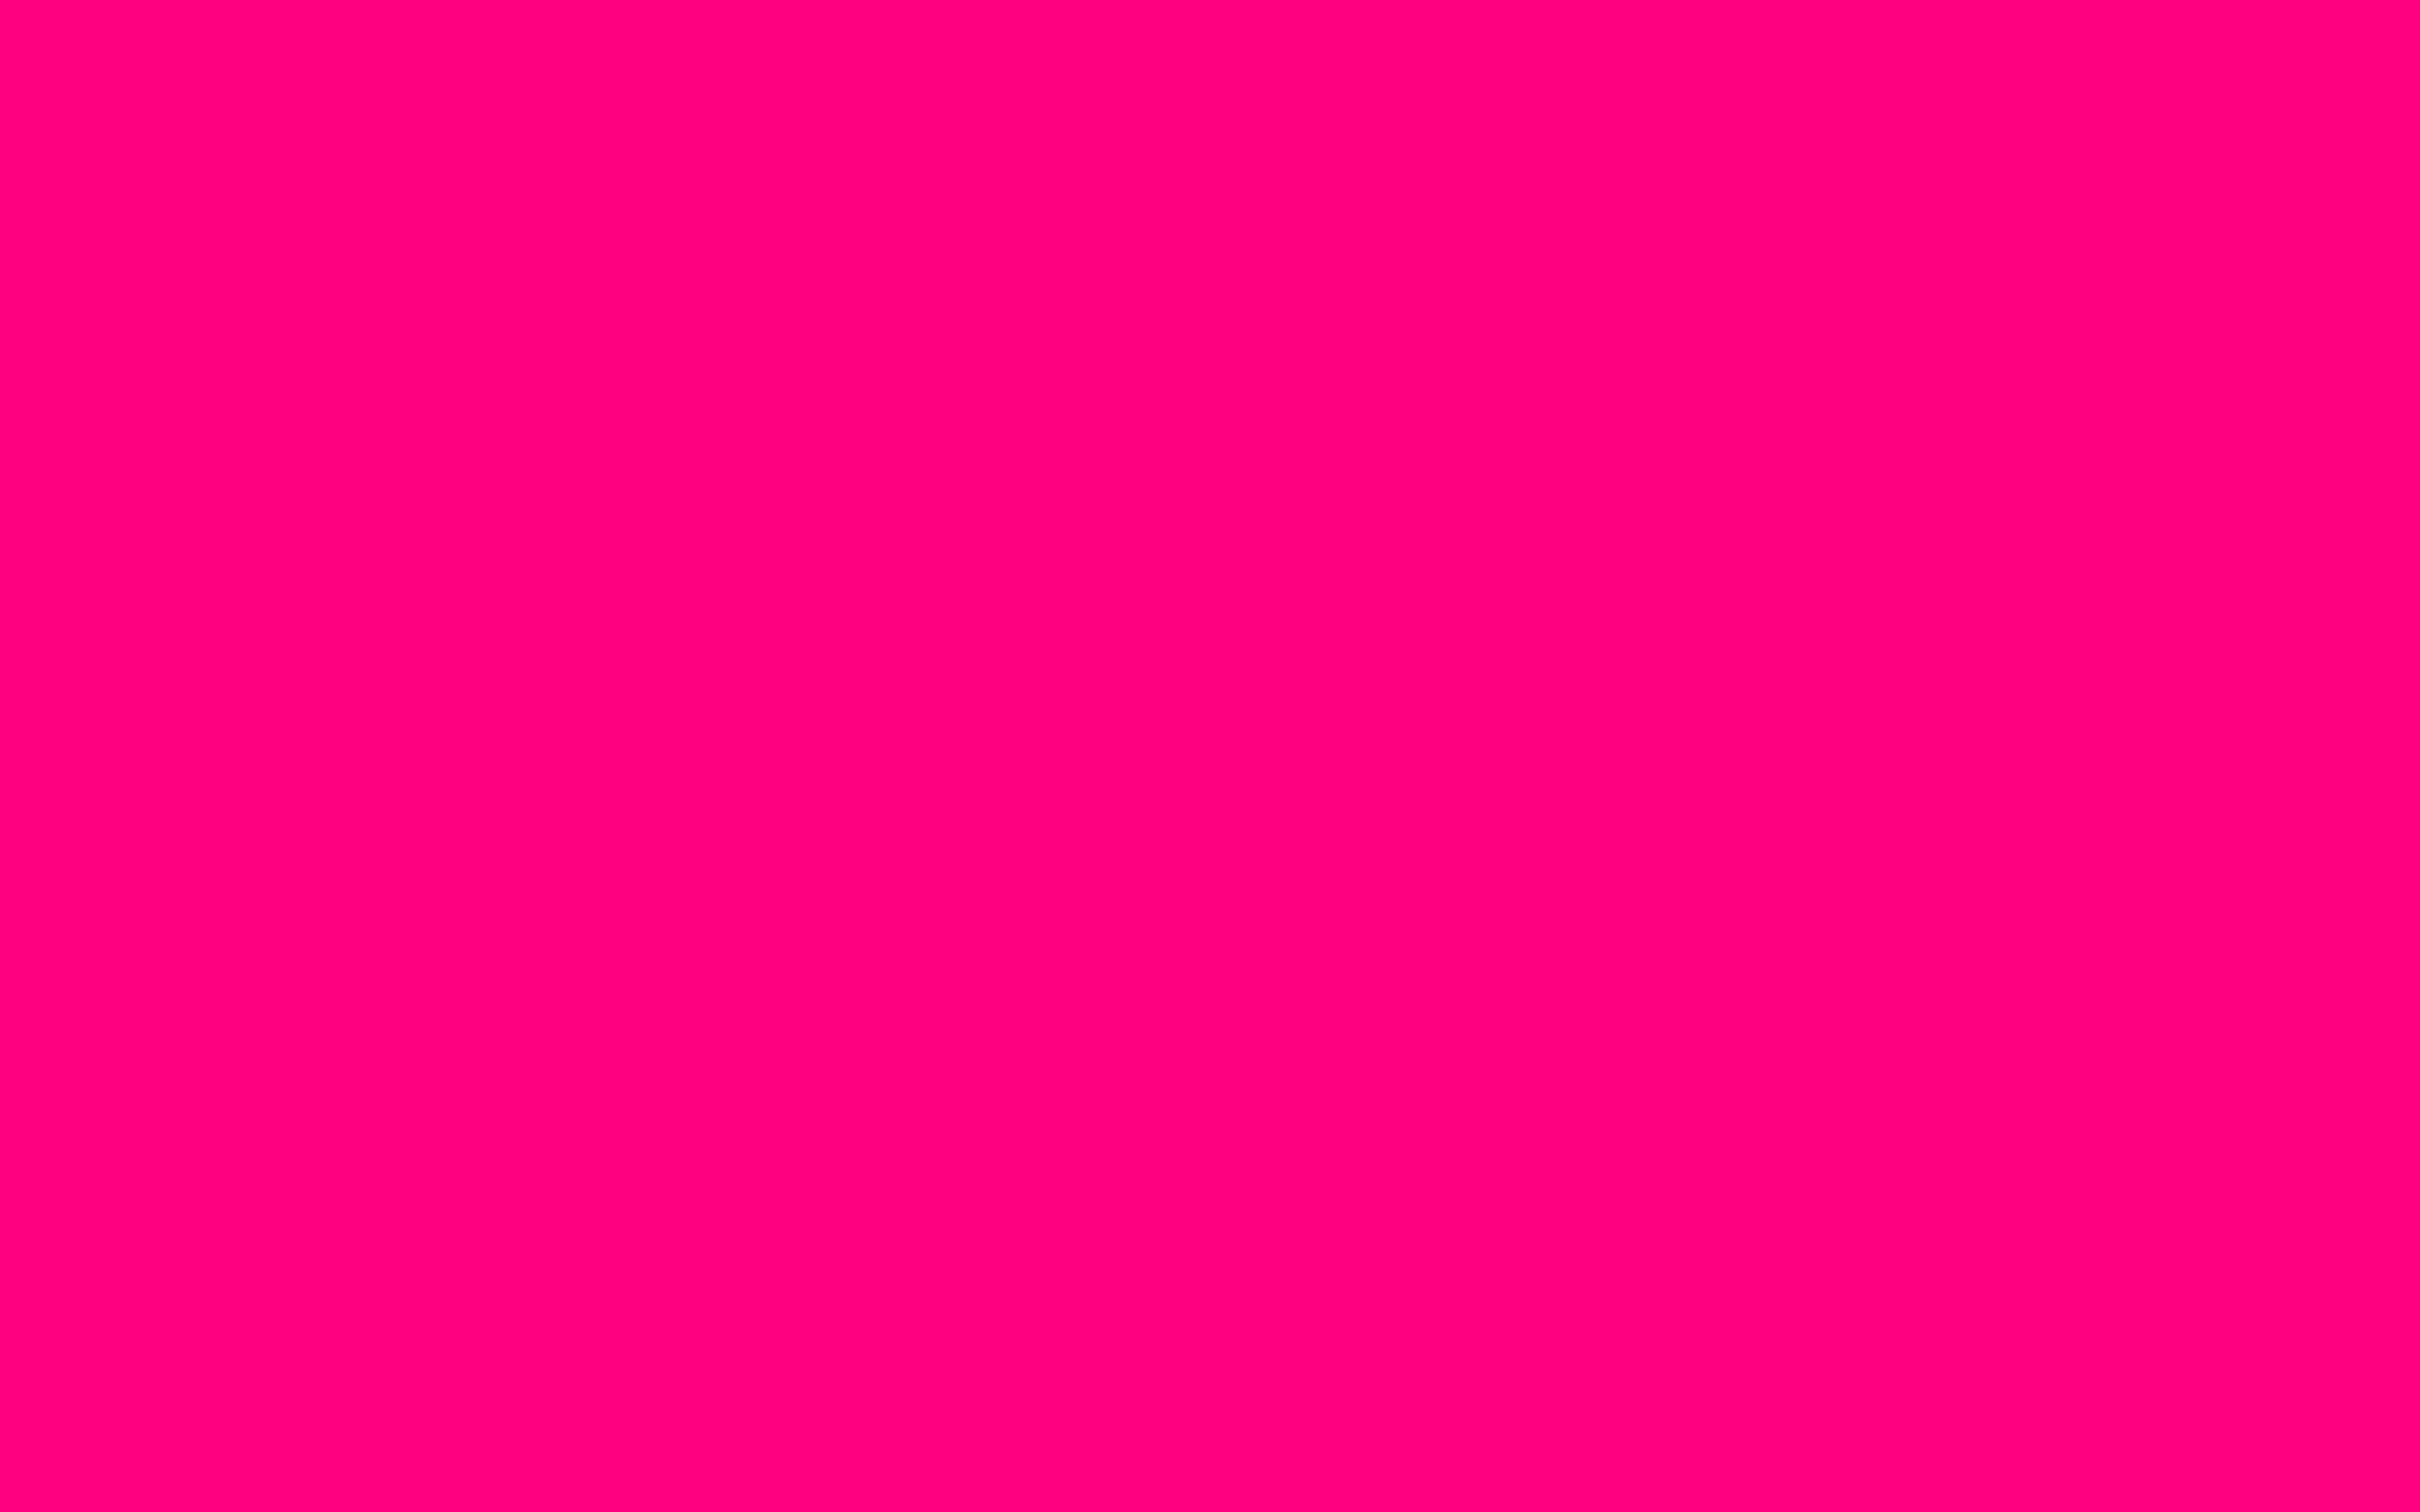 2880x1800 rose solid color background for Roses to colour in